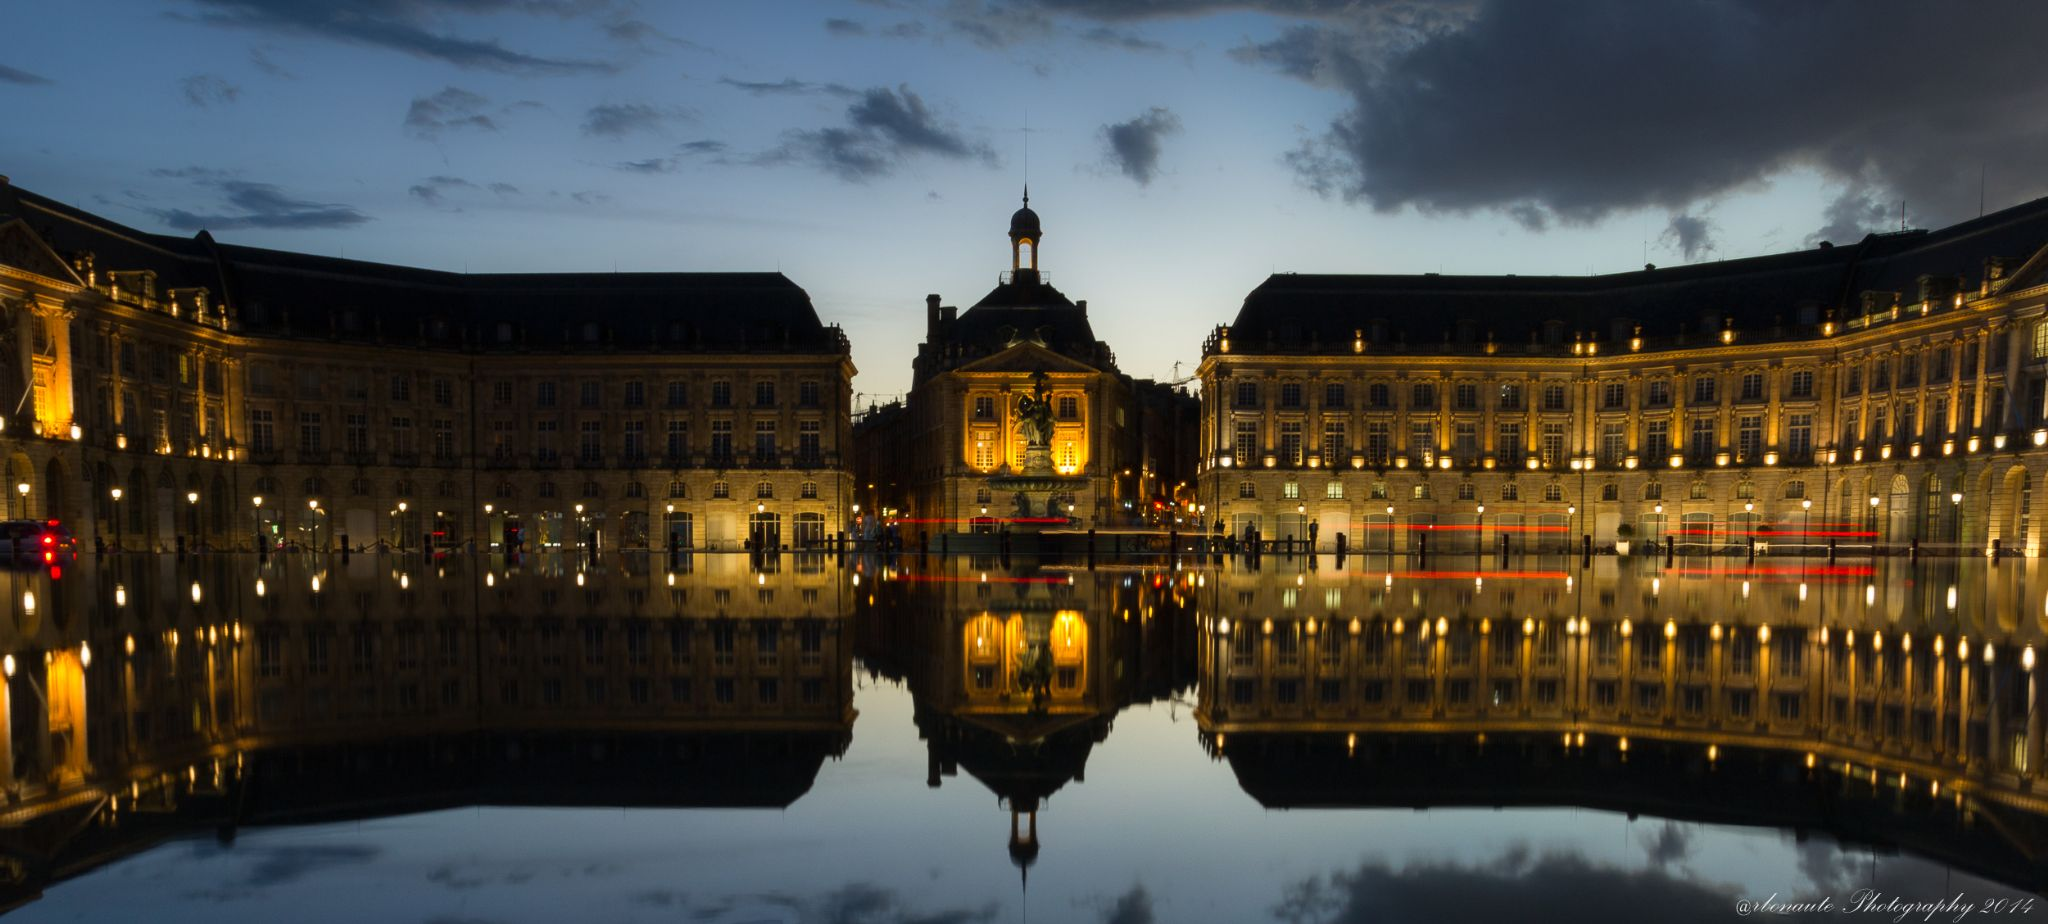 BORDEAUX  by arbonaute